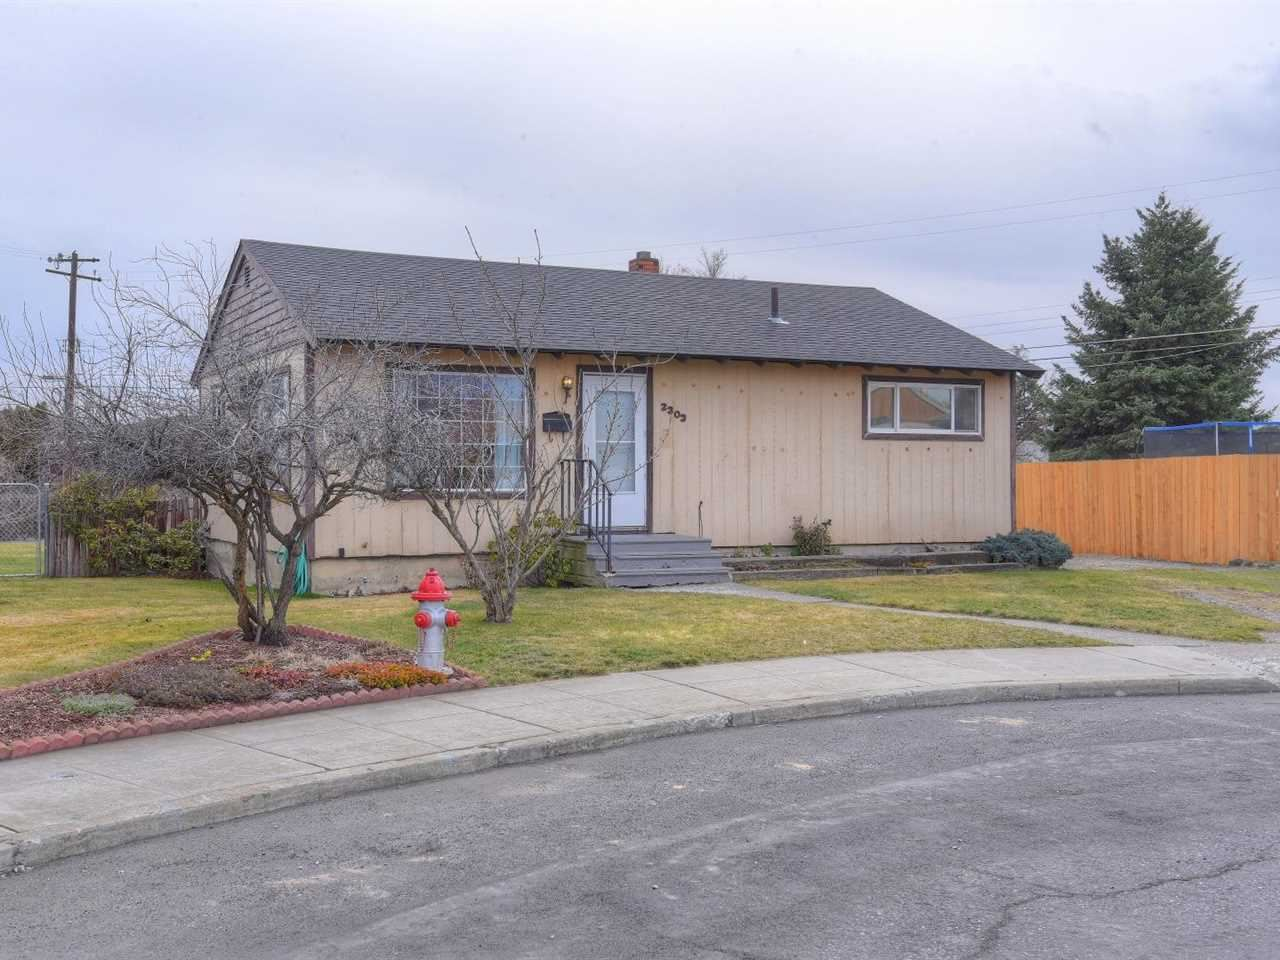 2303 N Upriver Ct, Spokane, WA 99217-7290 - #: 202012800